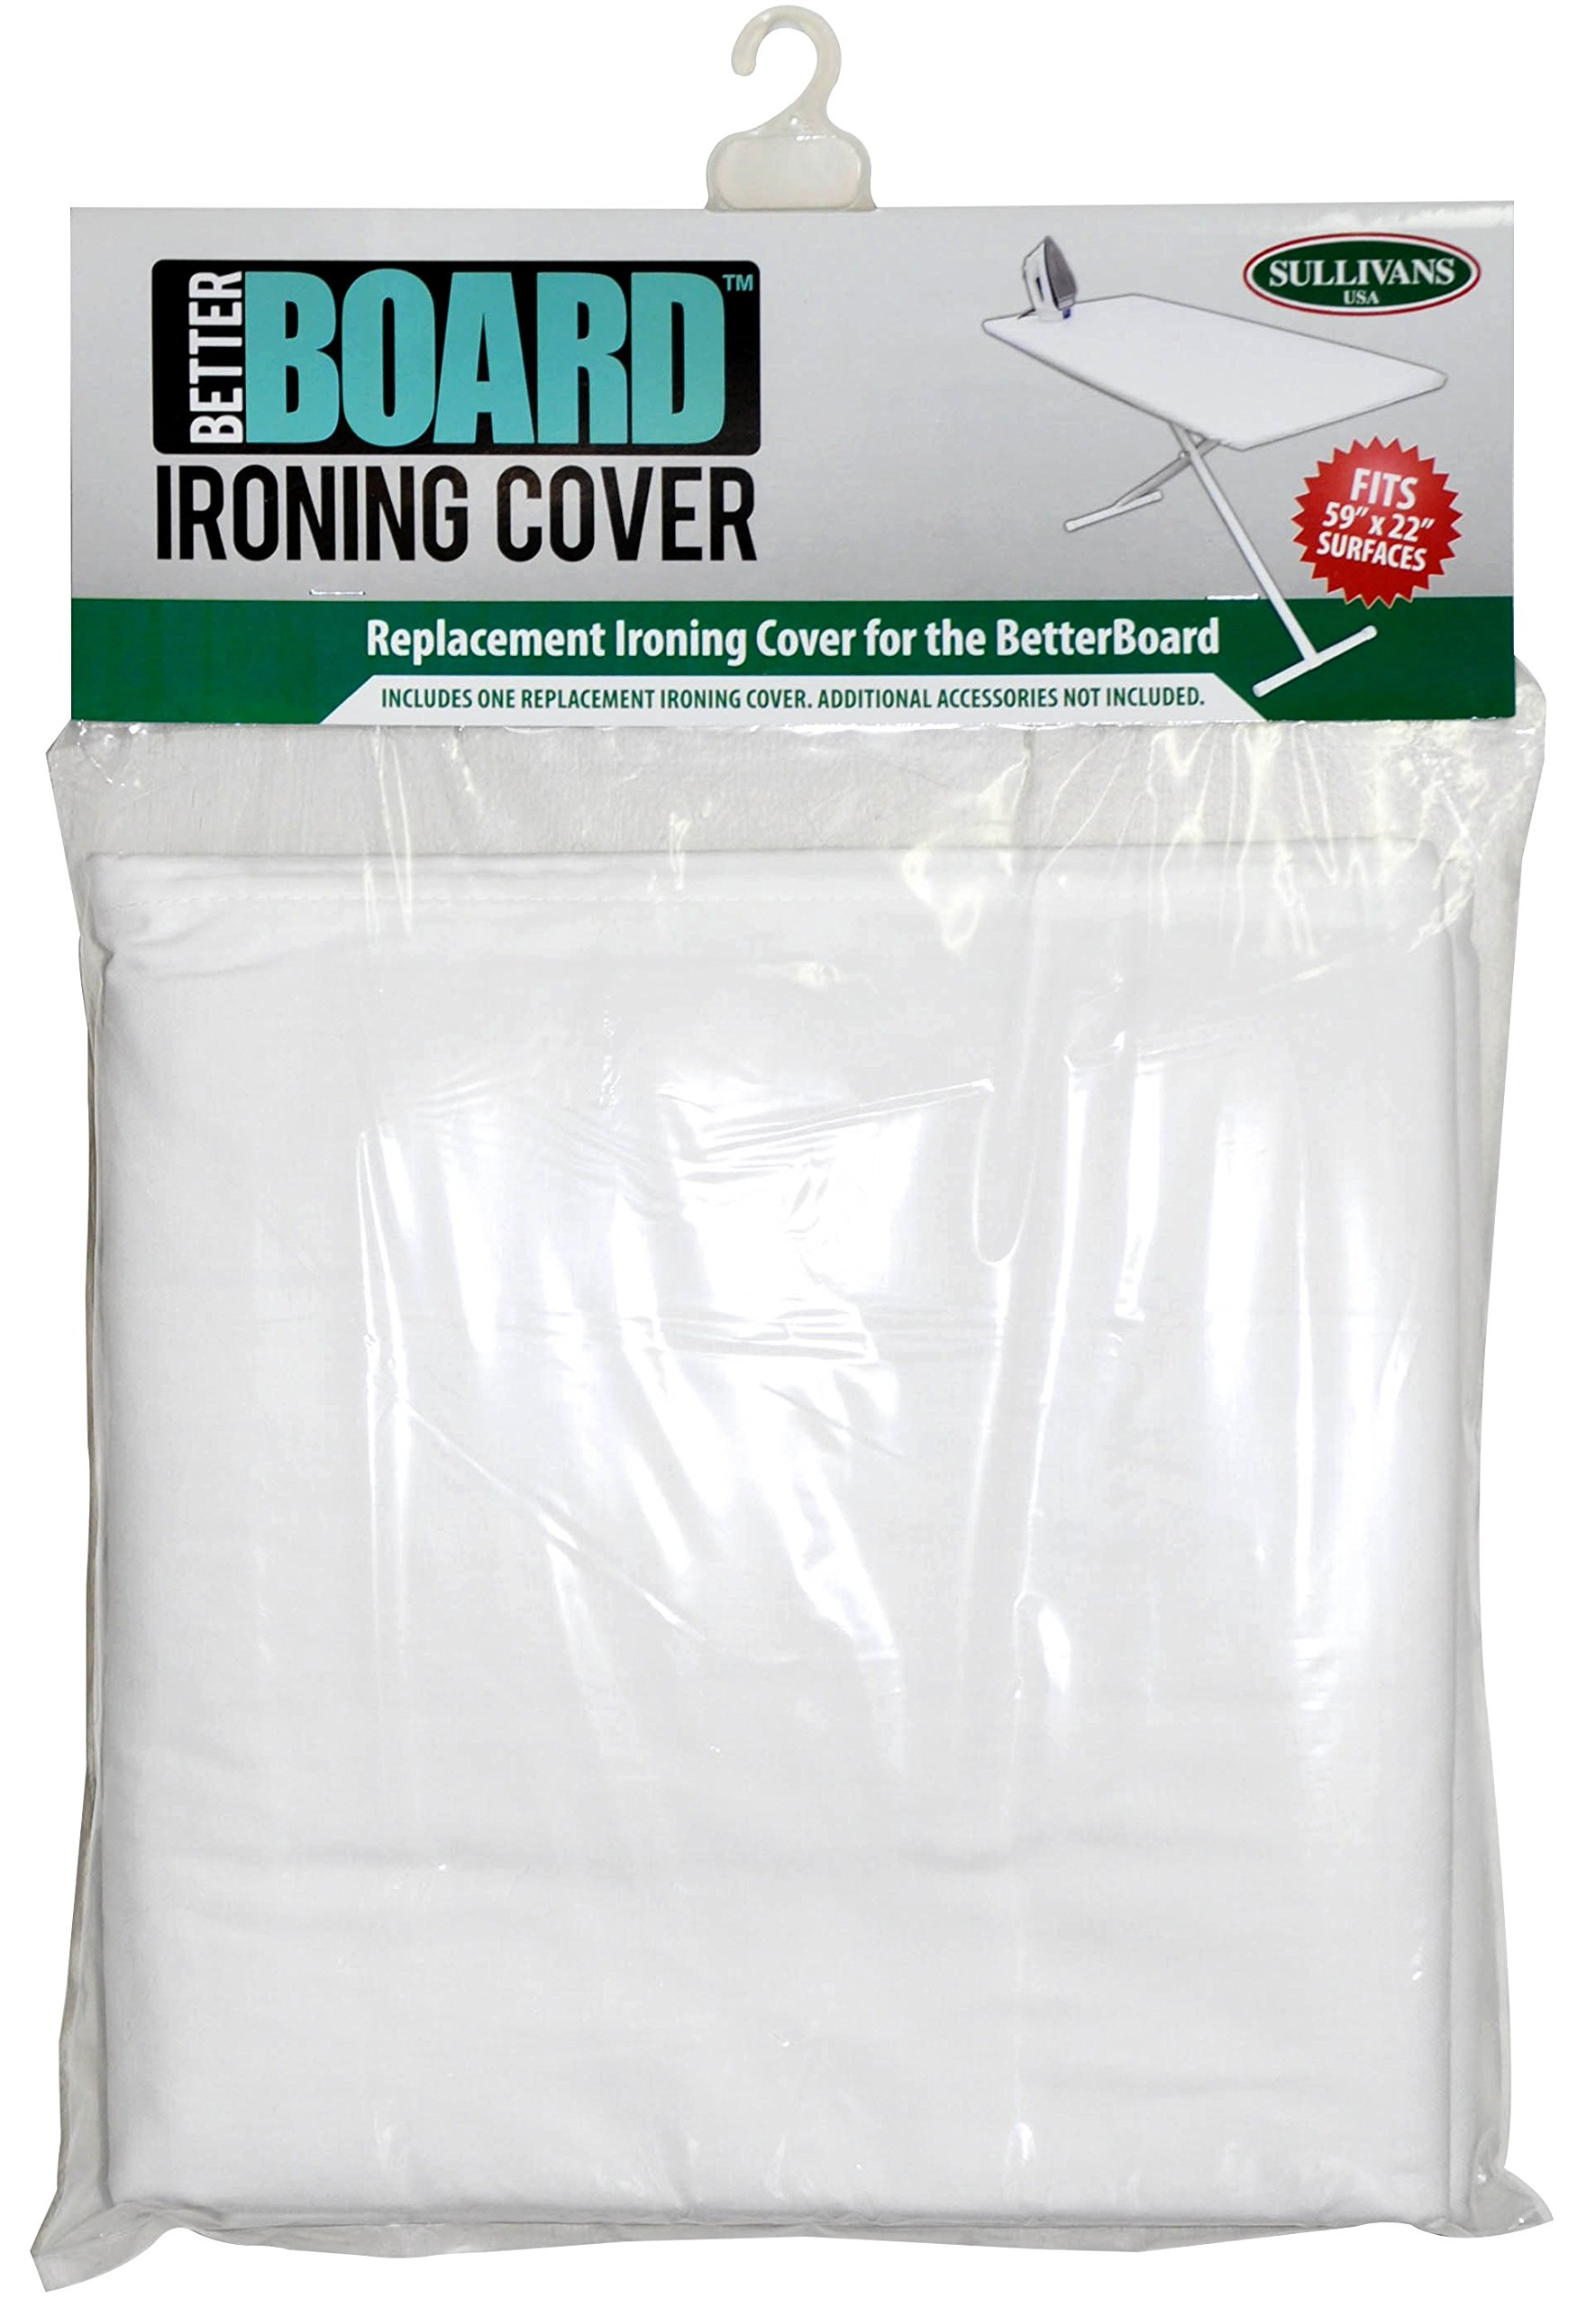 Sullivans 59'' x 22'' Better Board Replacement Ironing Cover, 100% Cotton, White